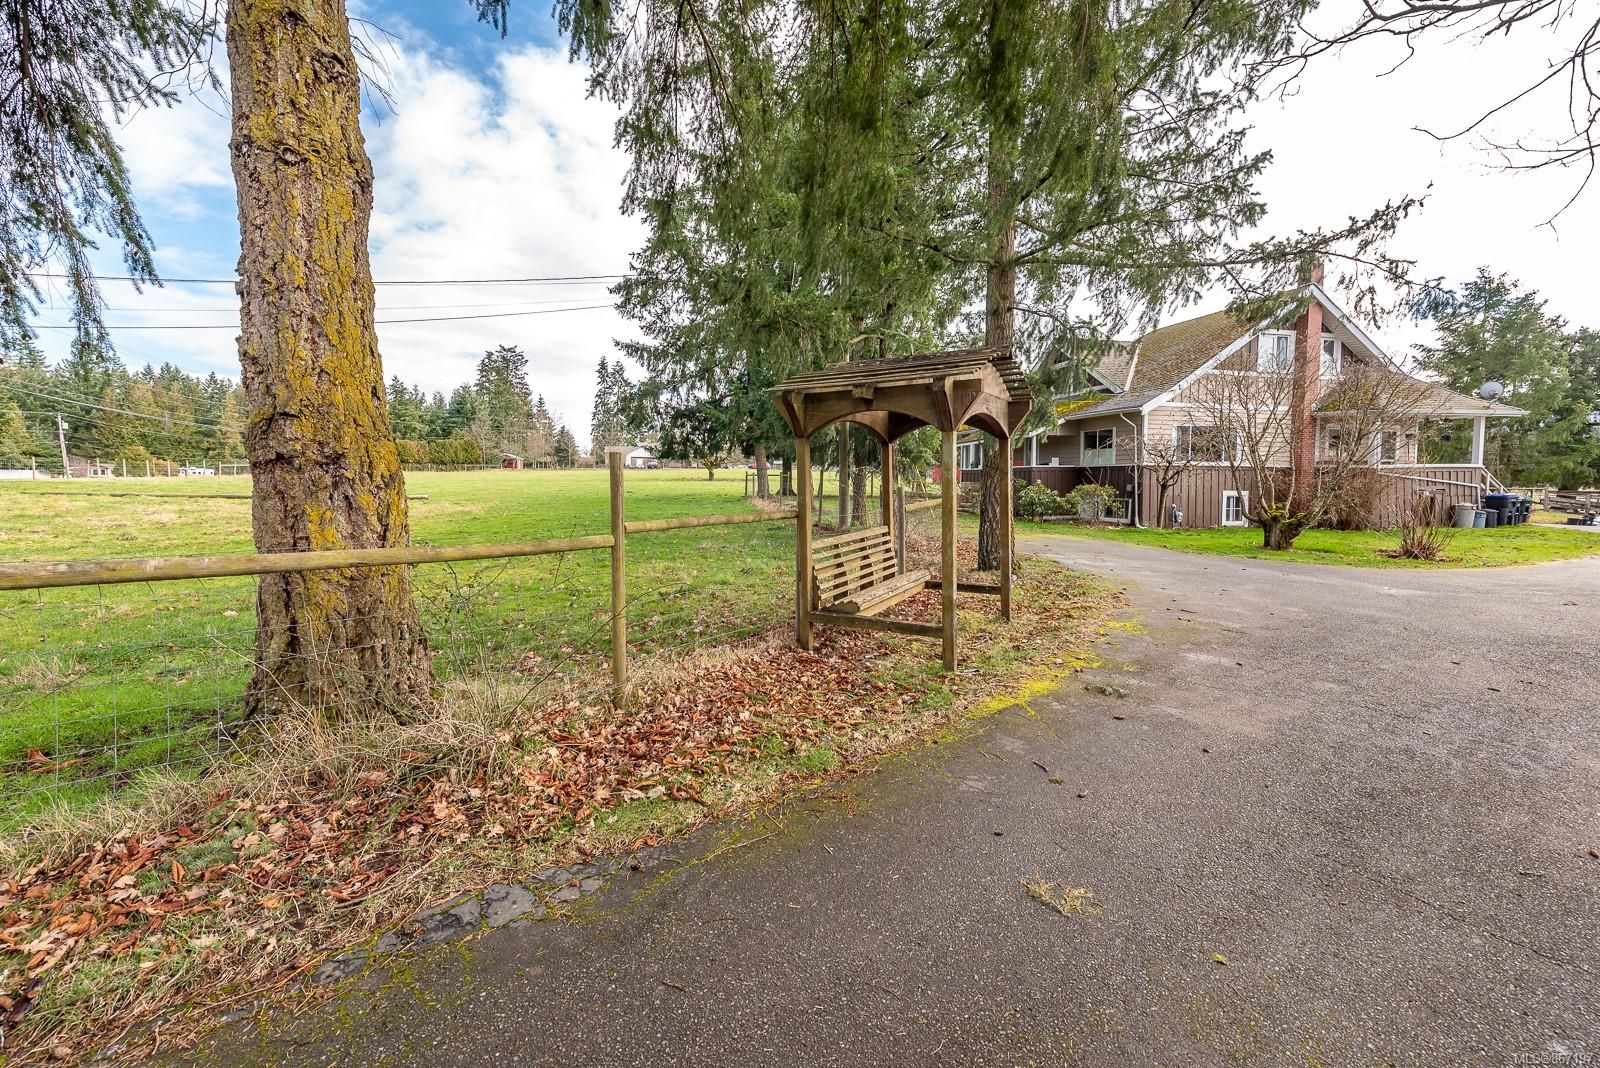 Main Photo: 3130 Alberni Hwy in : PQ Errington/Coombs/Hilliers House for sale (Parksville/Qualicum)  : MLS®# 867197